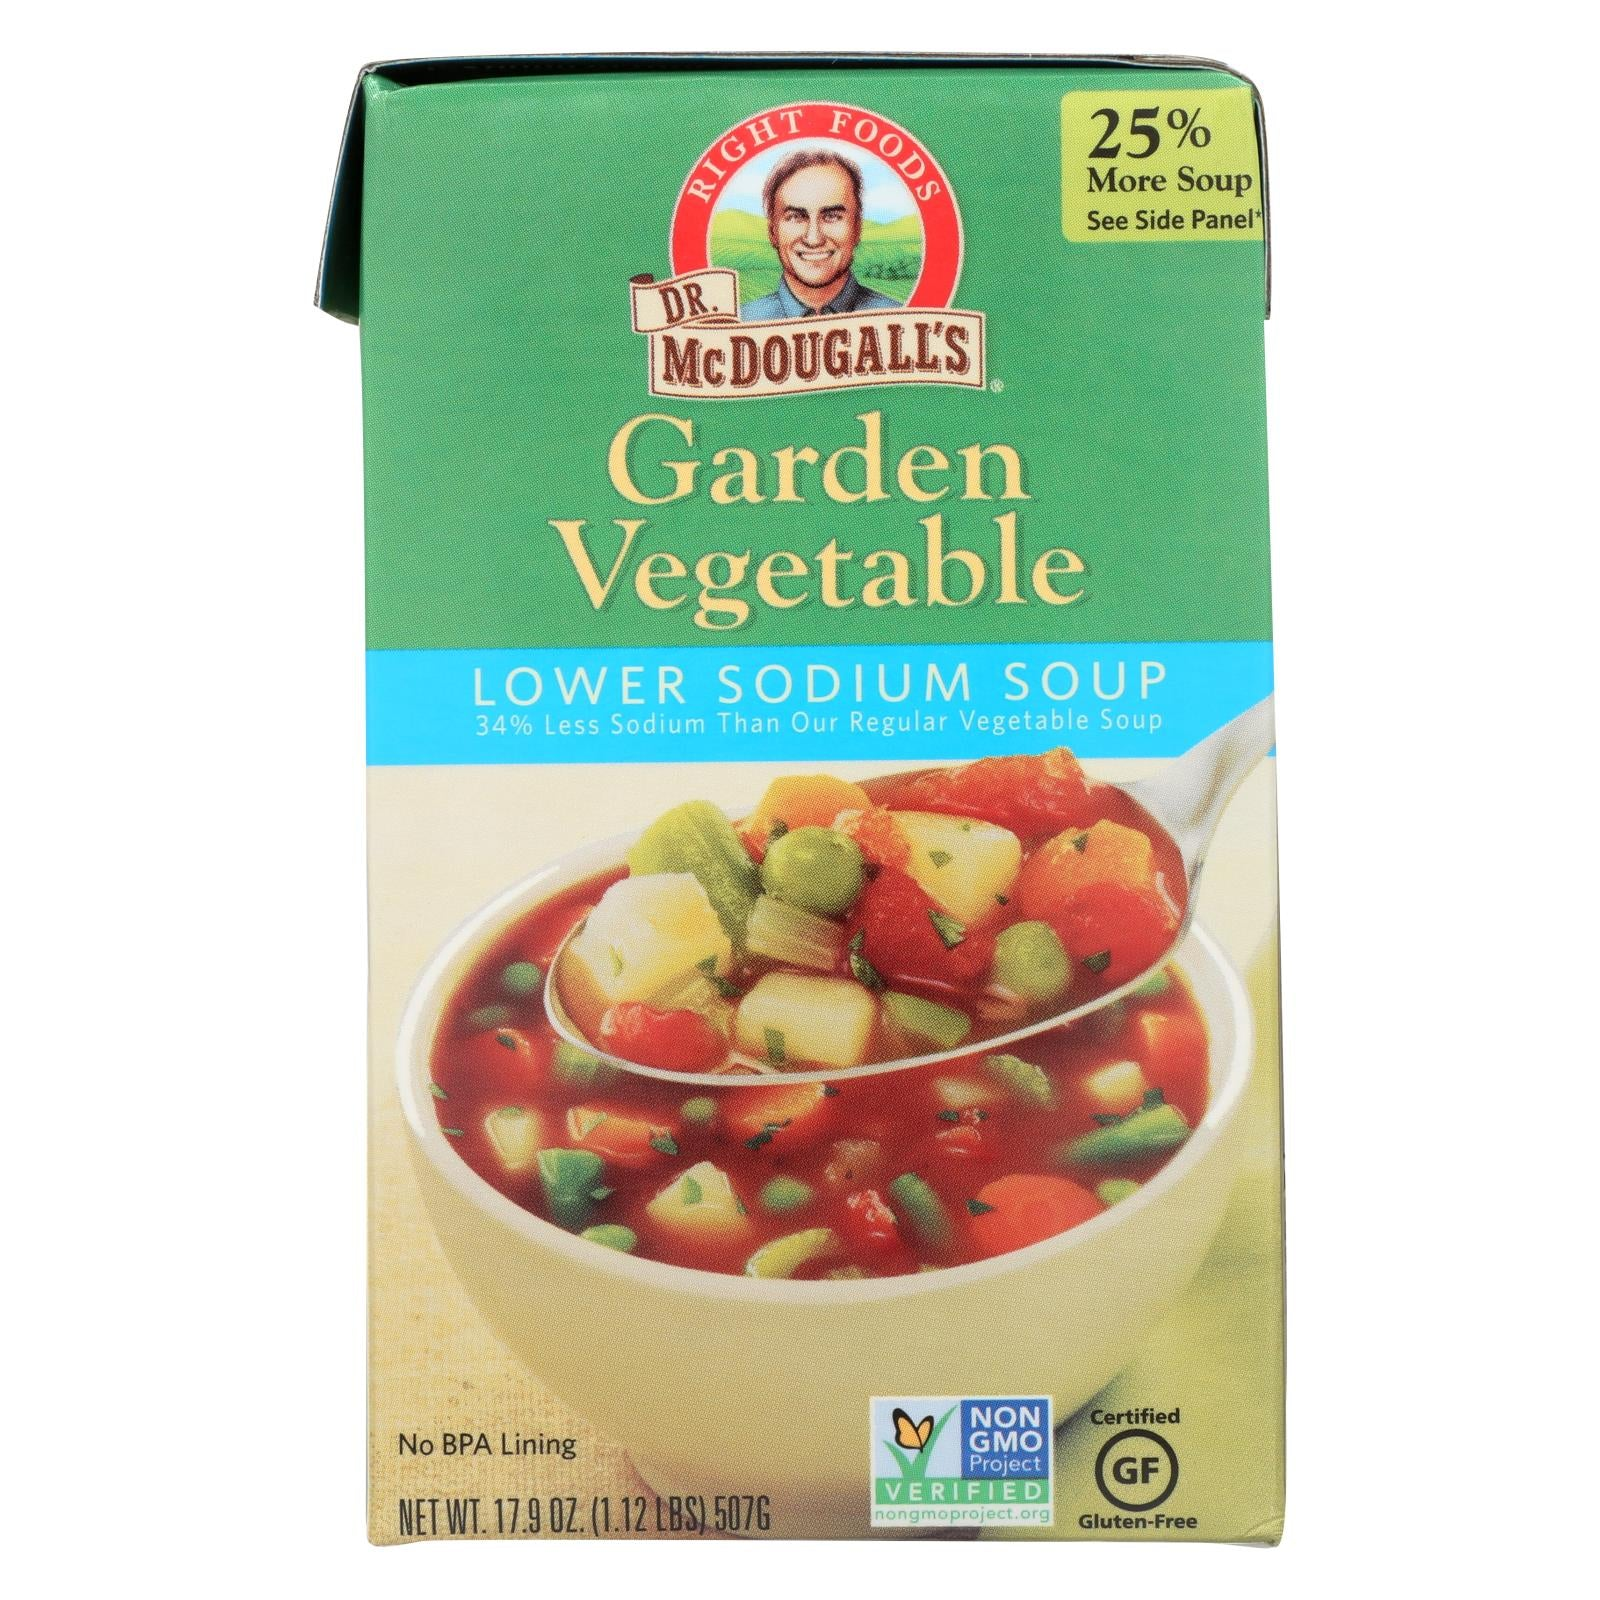 Dr. Mcdougall's Garden Vegetable Lower Sodium Soup - Case Of 6 - 17.9 Oz. HG0396929